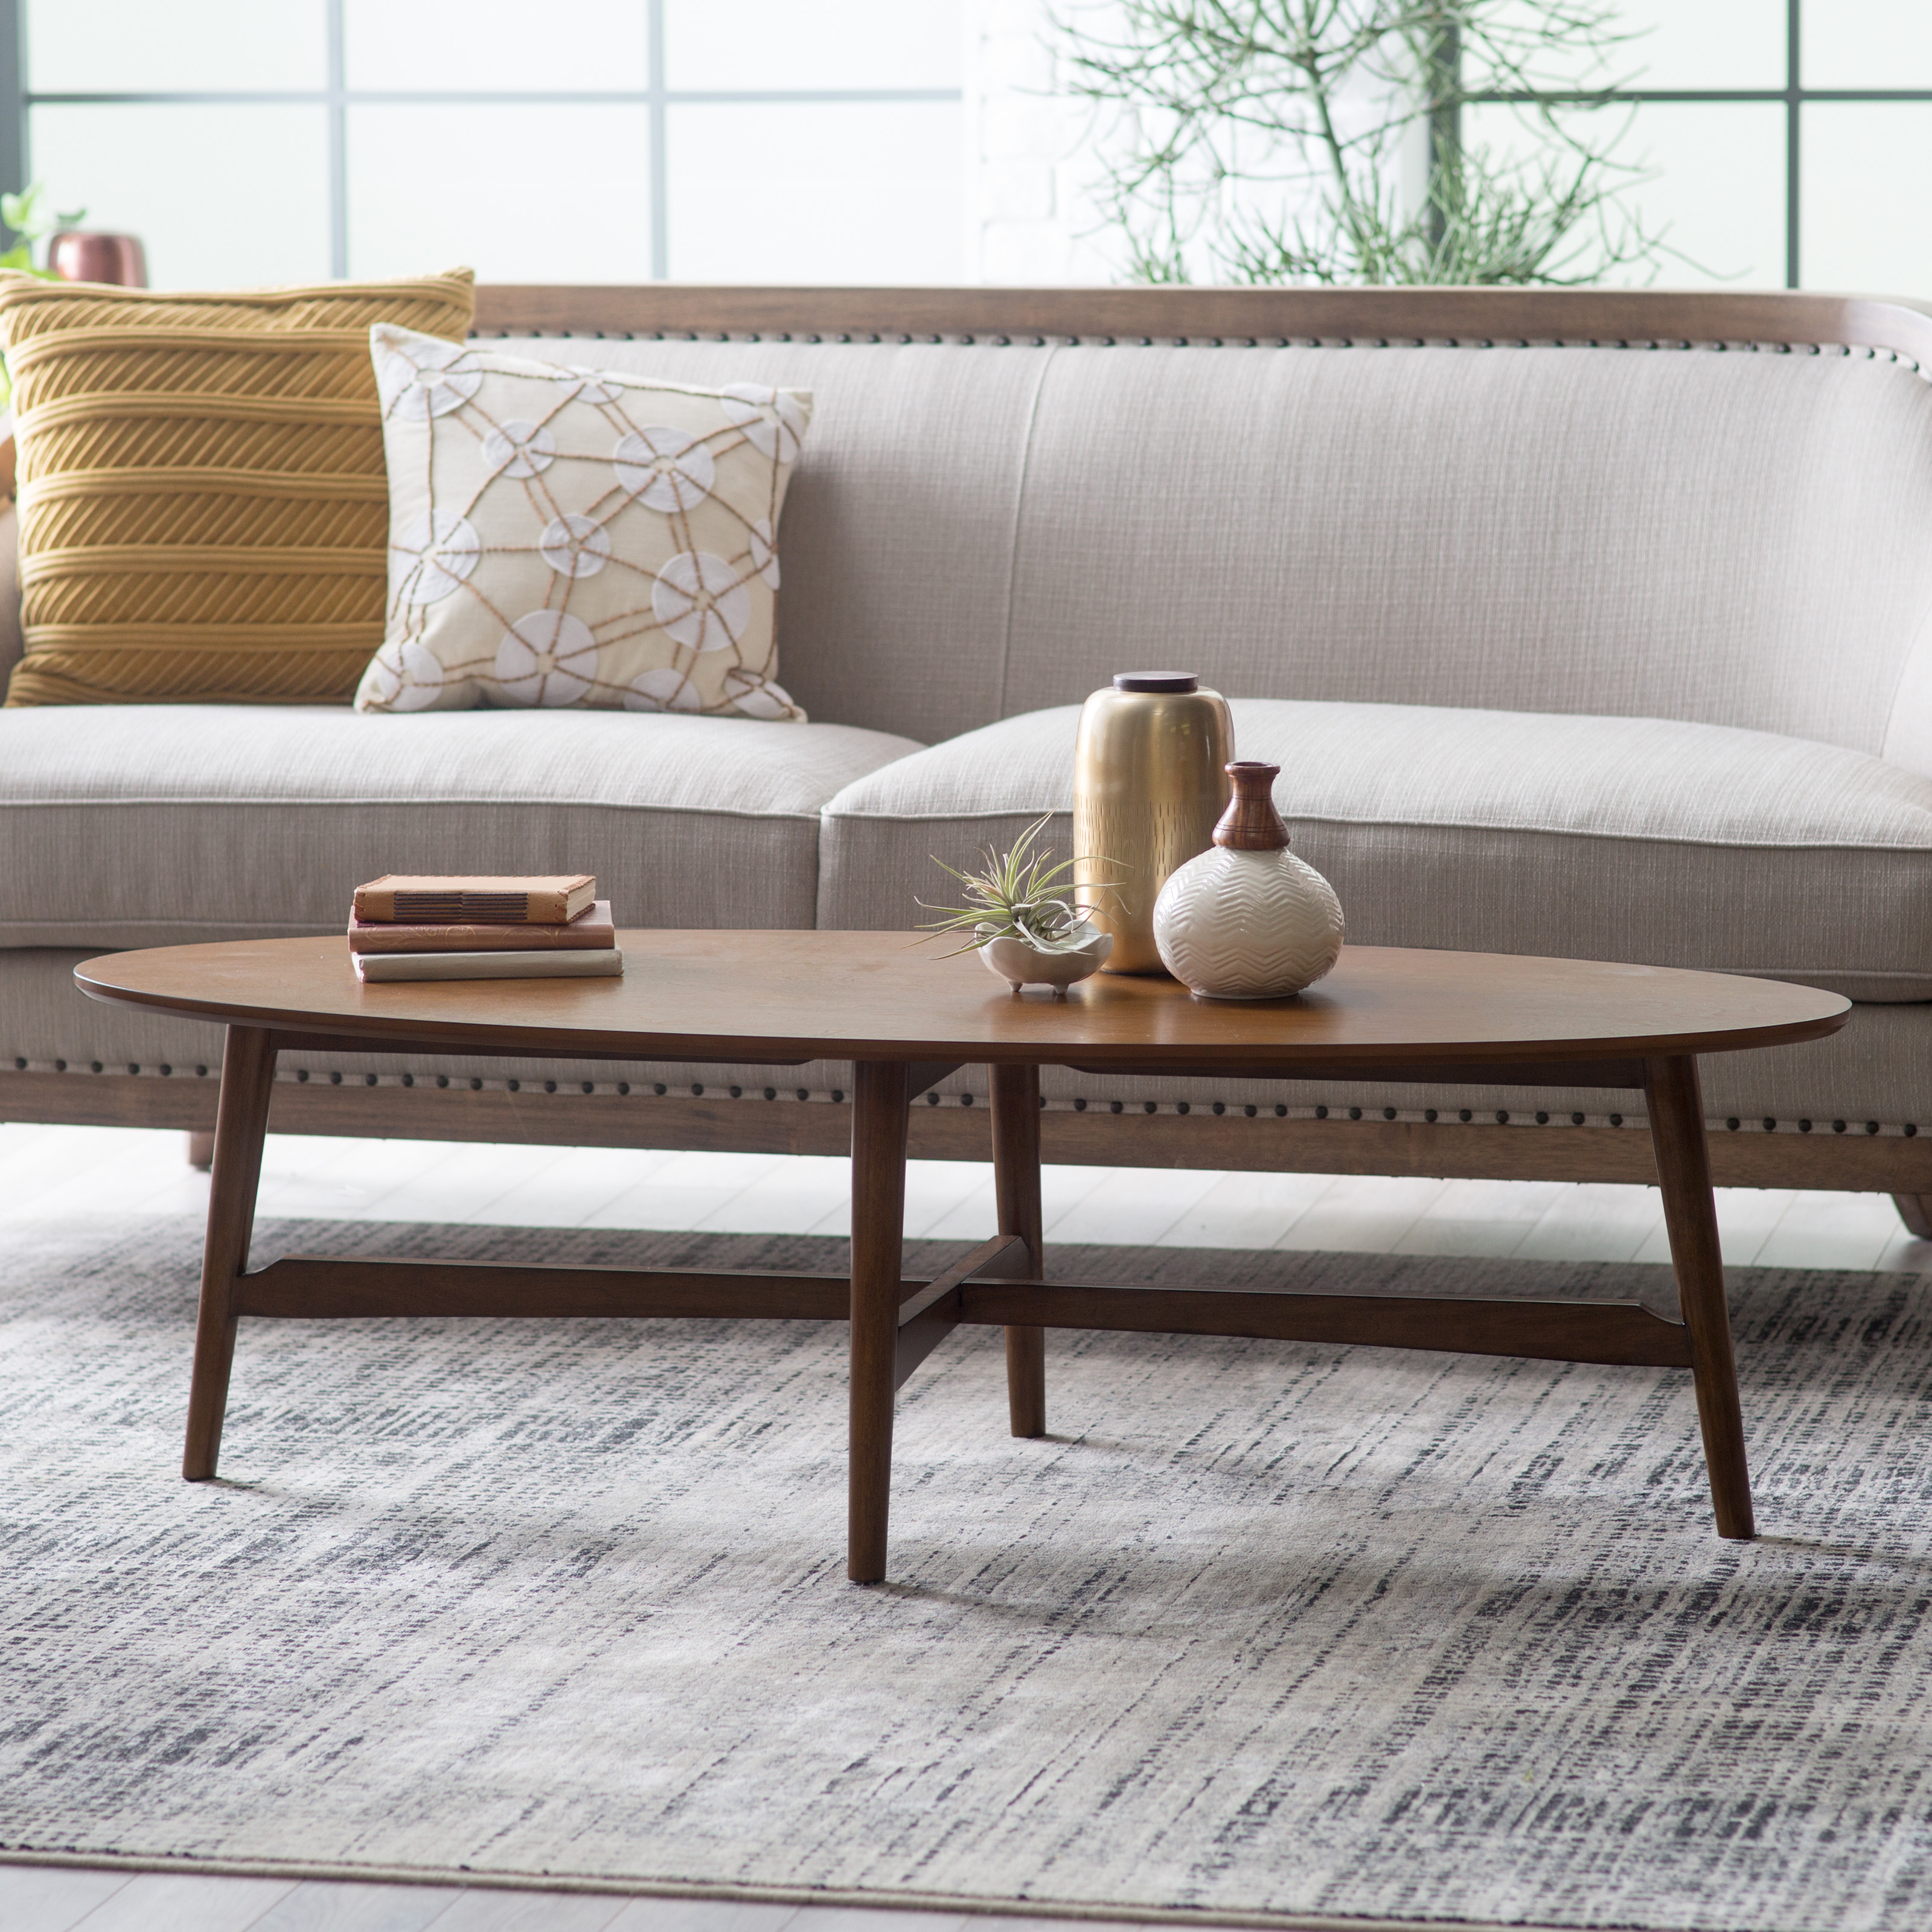 Charming Oval Coffee Tables